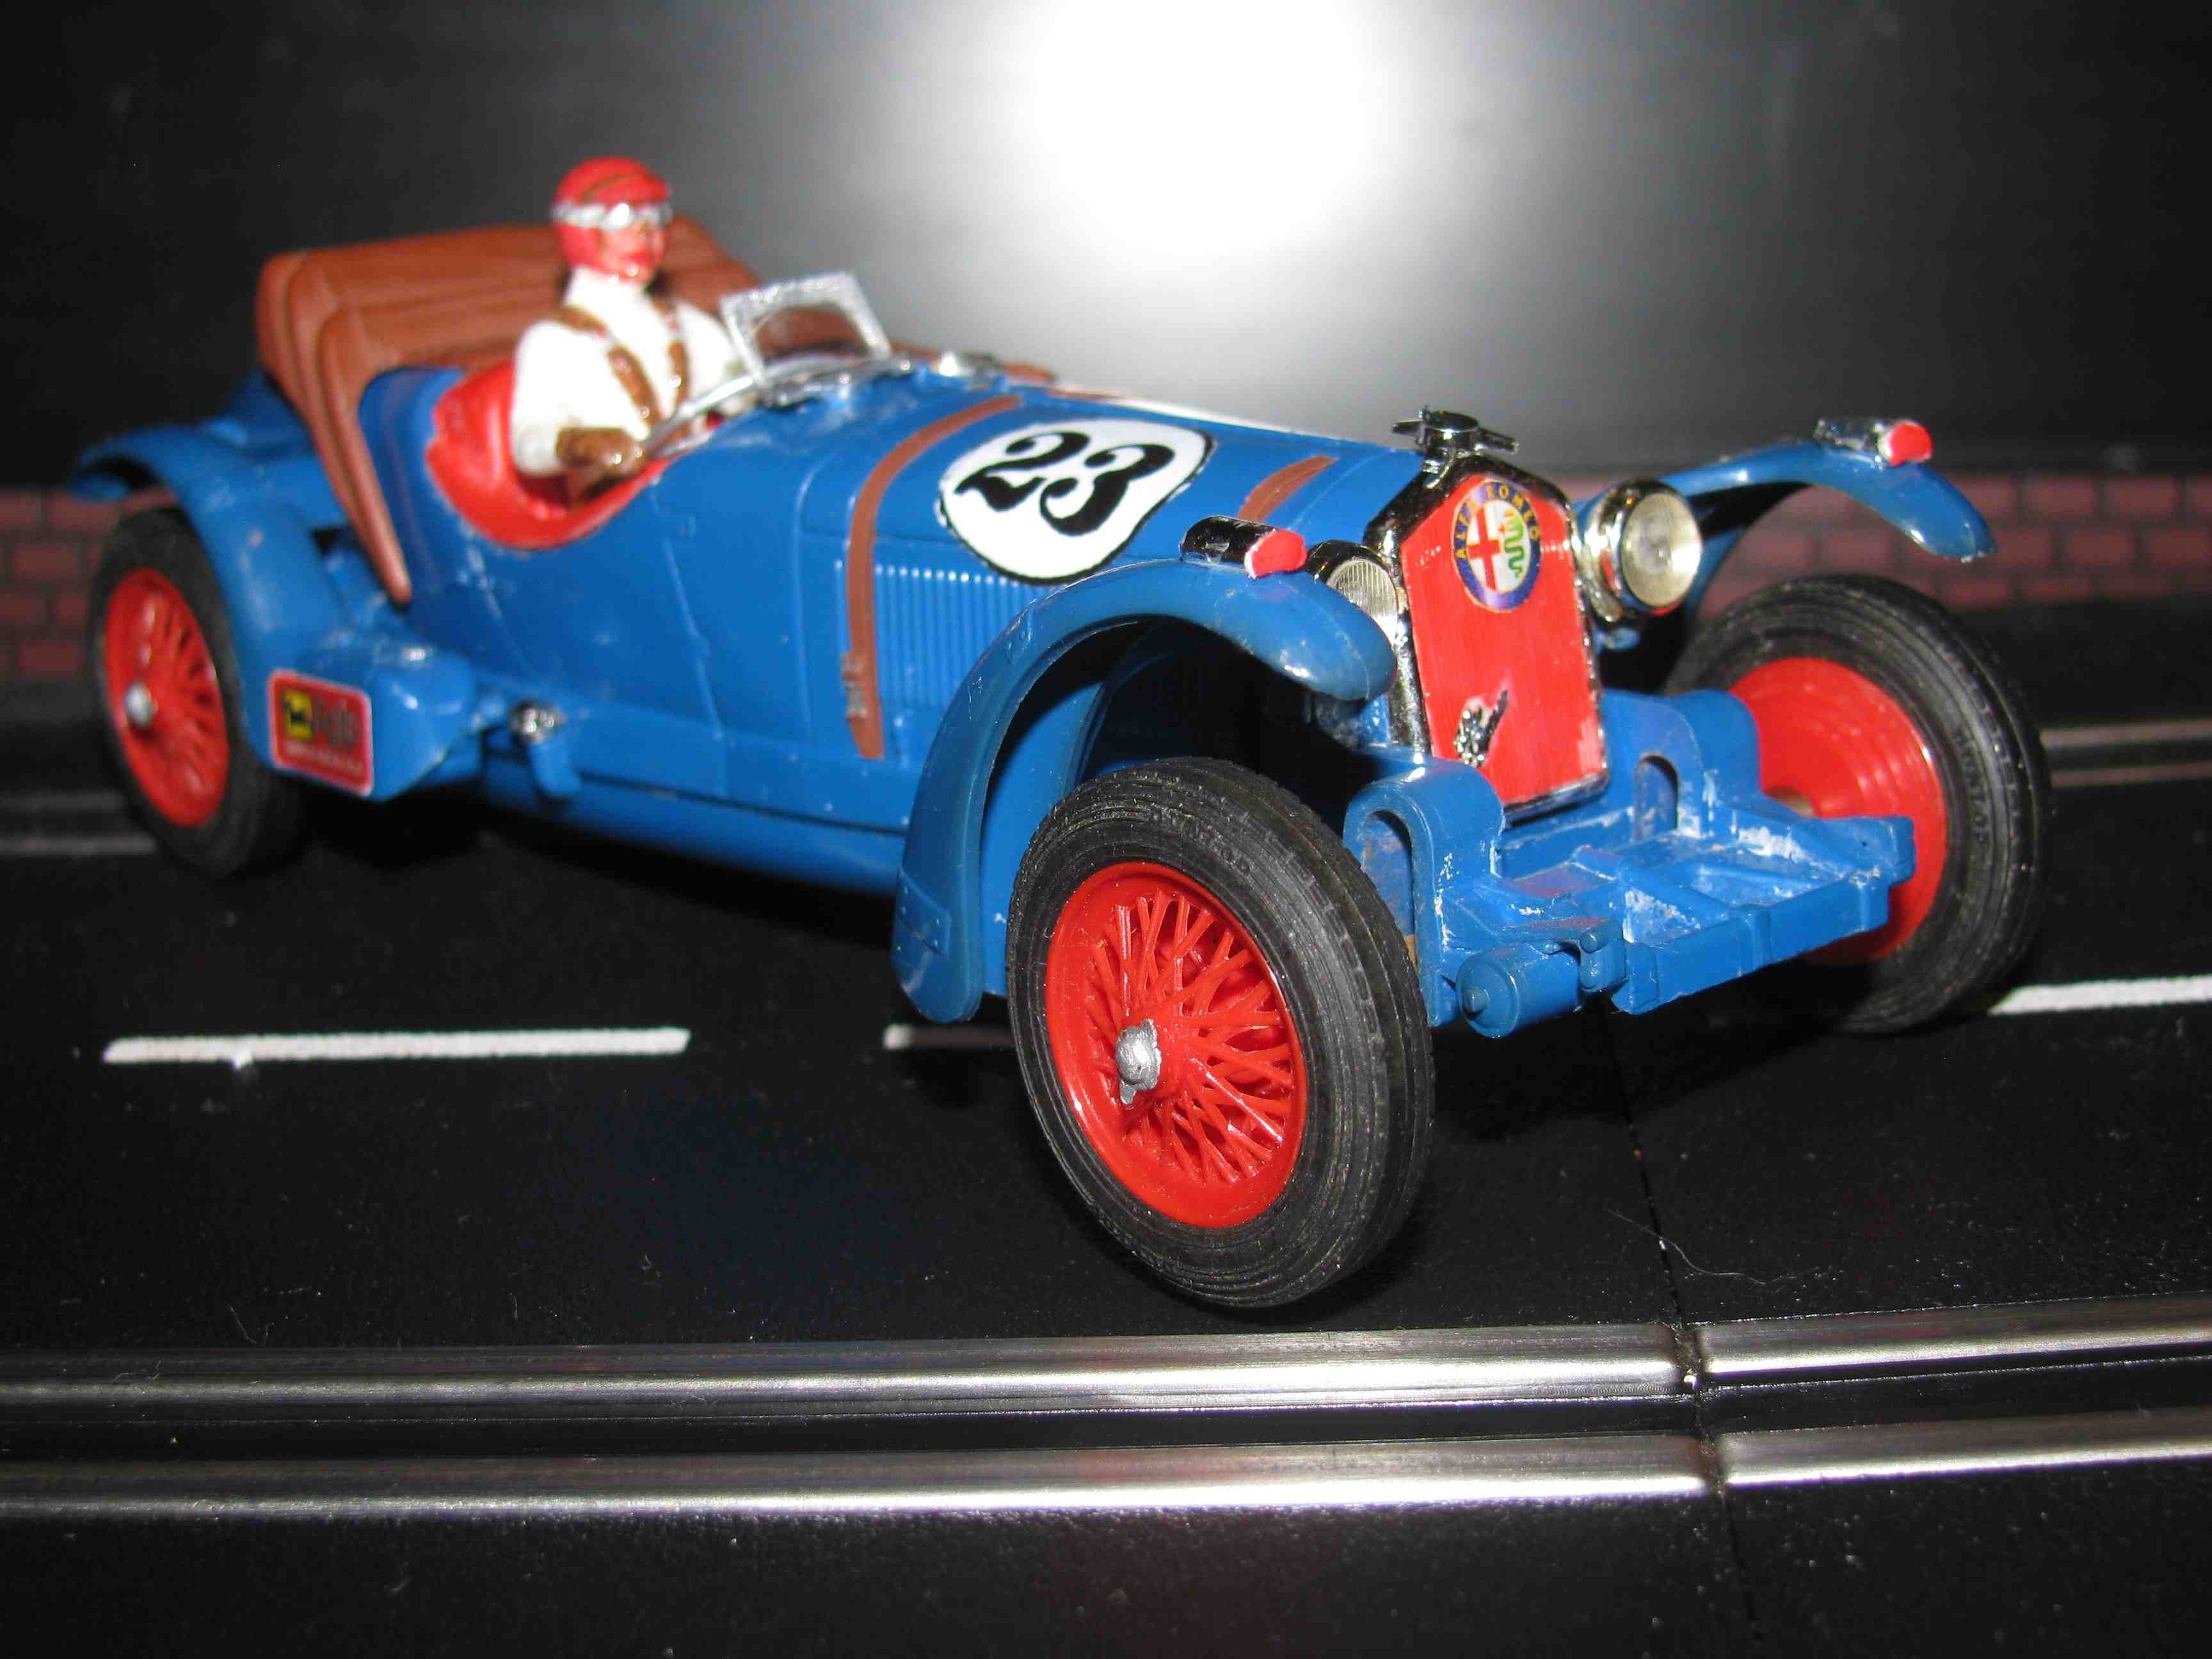 Alfa Romeo C 65 Scalextric Triang Slot Car 1/32 Scale